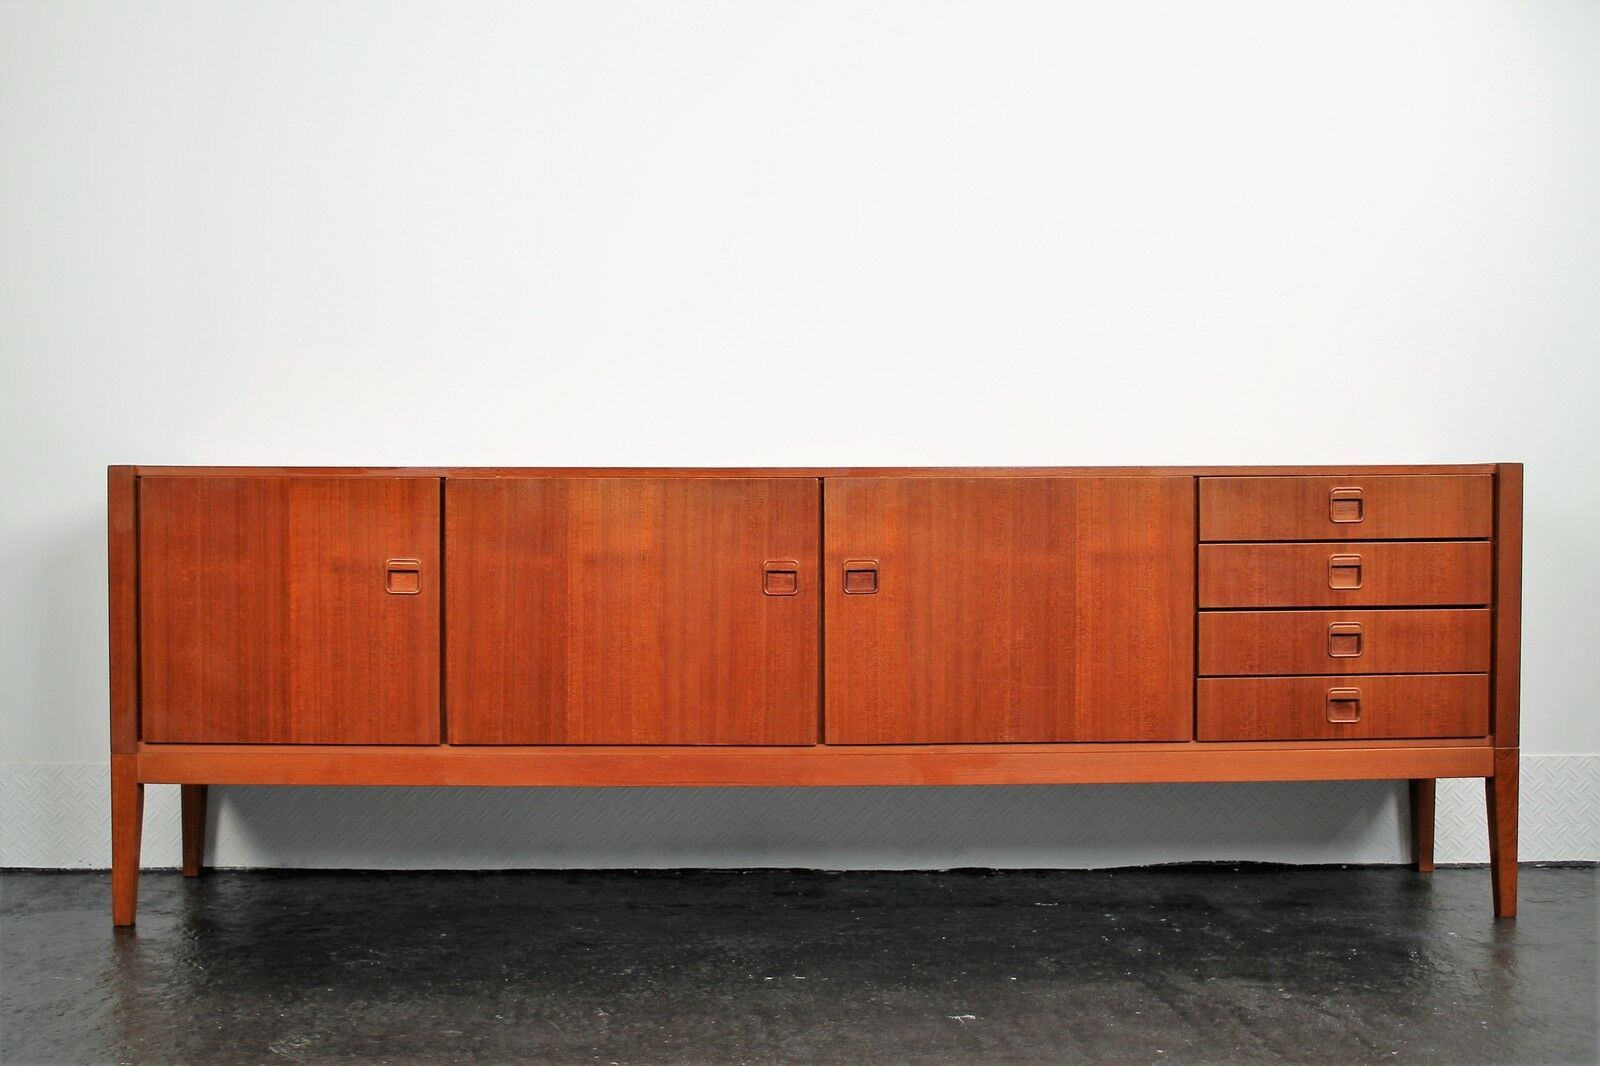 fristho sideboard teakholz kommode credenza design teak 60er 70er eur 590 00 picclick de. Black Bedroom Furniture Sets. Home Design Ideas